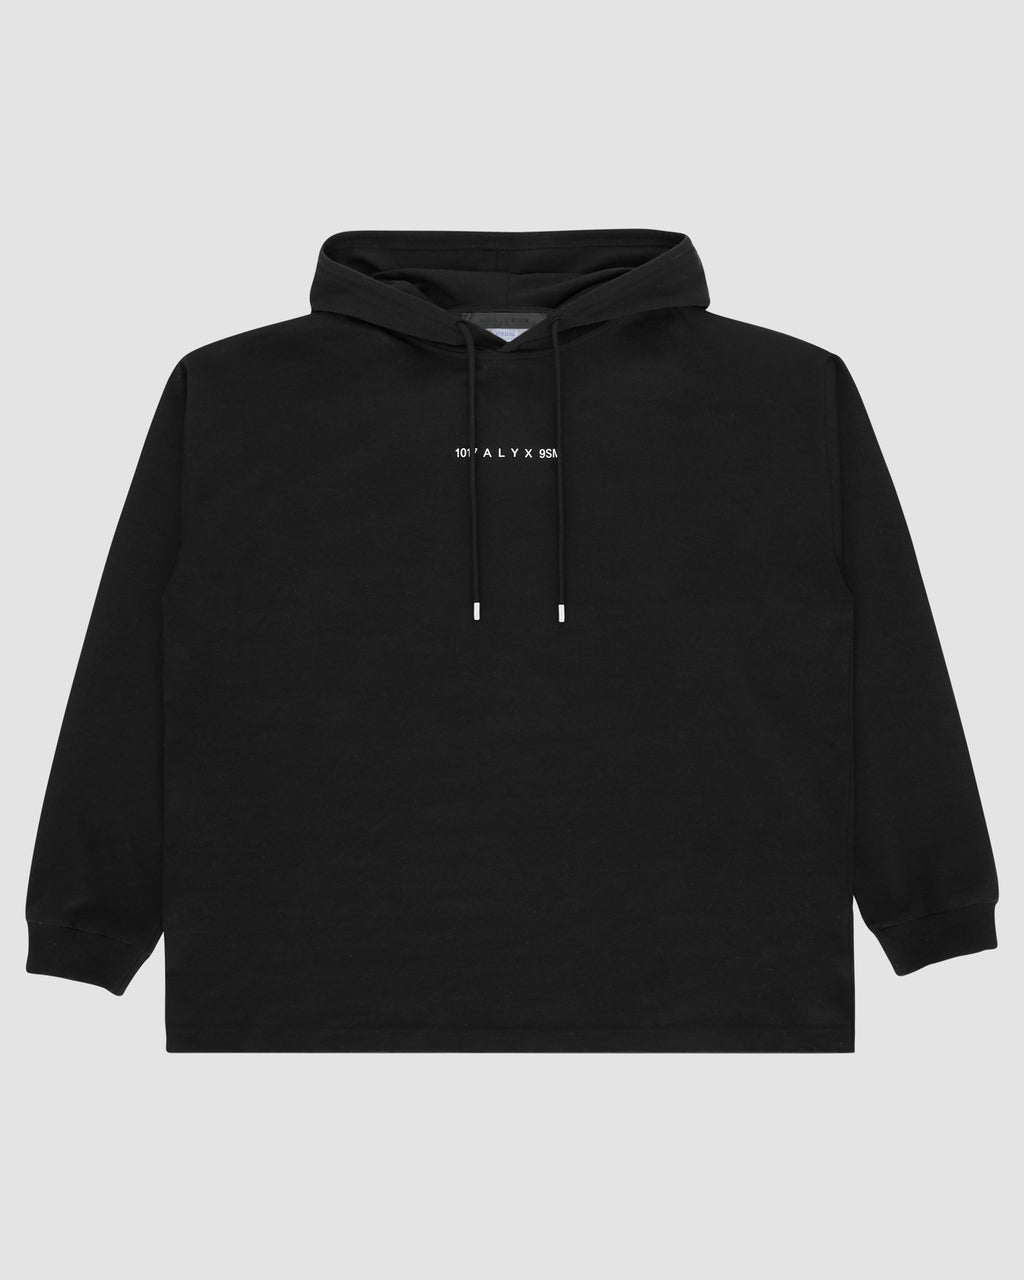 1017 ALYX 9SM | LOGO HOODED TEE | Sweatshirt | Black, F19, Visual